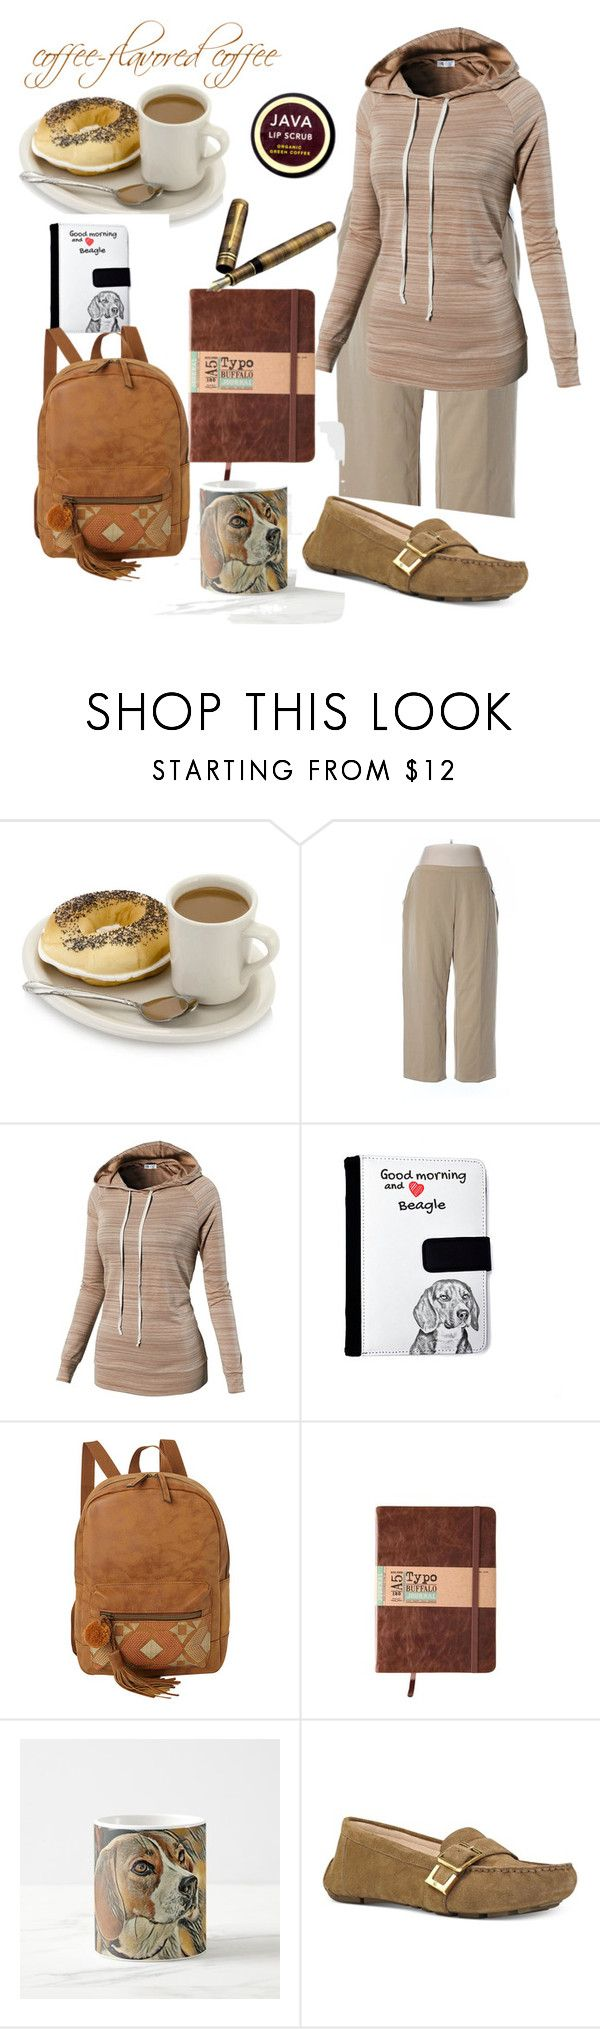 """""""Coffee-flavored Coffee"""" by magno504 ❤ liked on Polyvore featuring L.L.Bean, T-shirt & Jeans, Waterman, Nine West, Java and plus size clothing"""